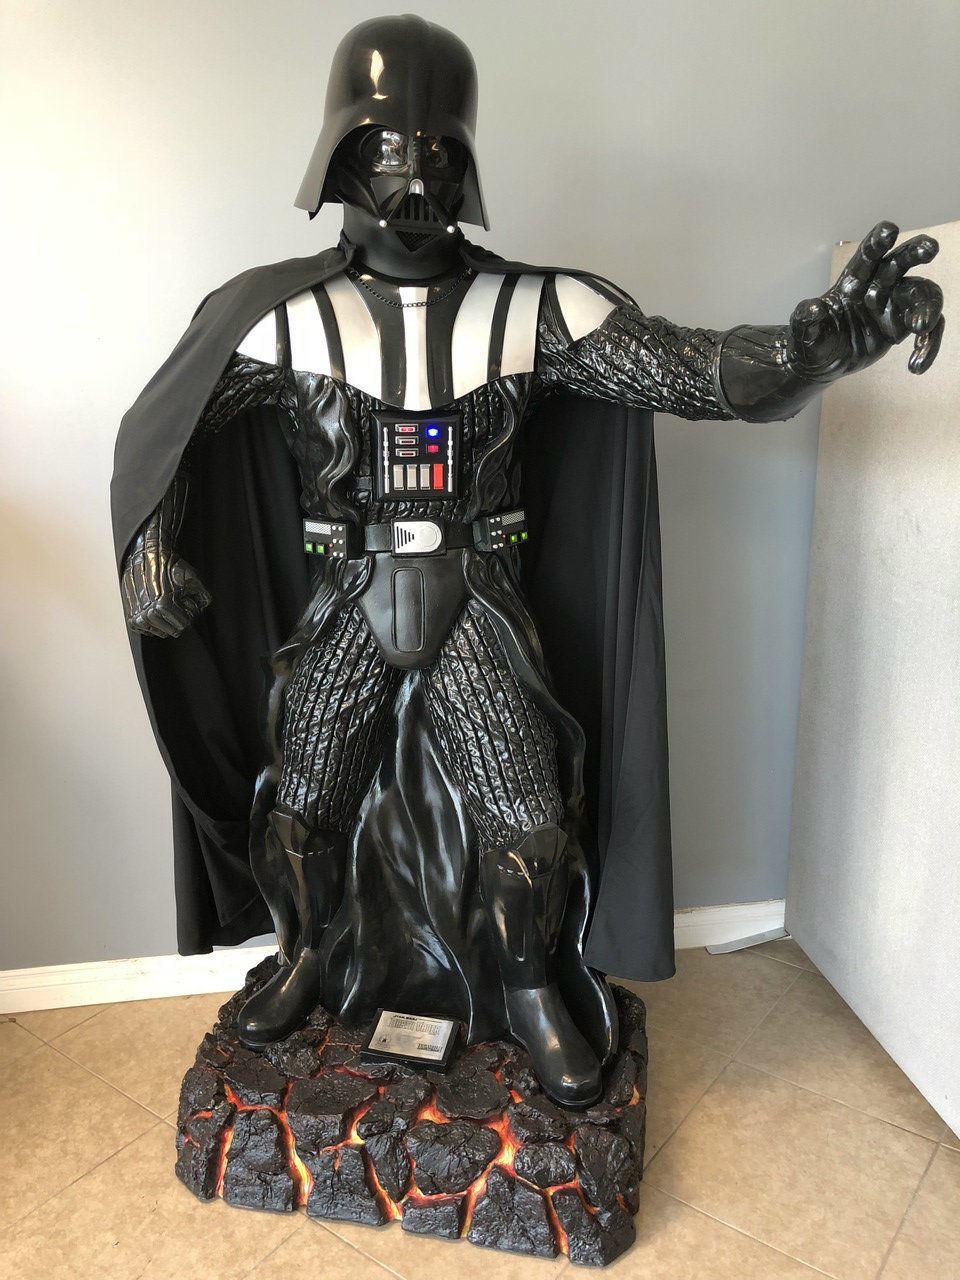 Star Wars Darth Vader Anakin Skywalker Life Size Statue Light Up Ebay